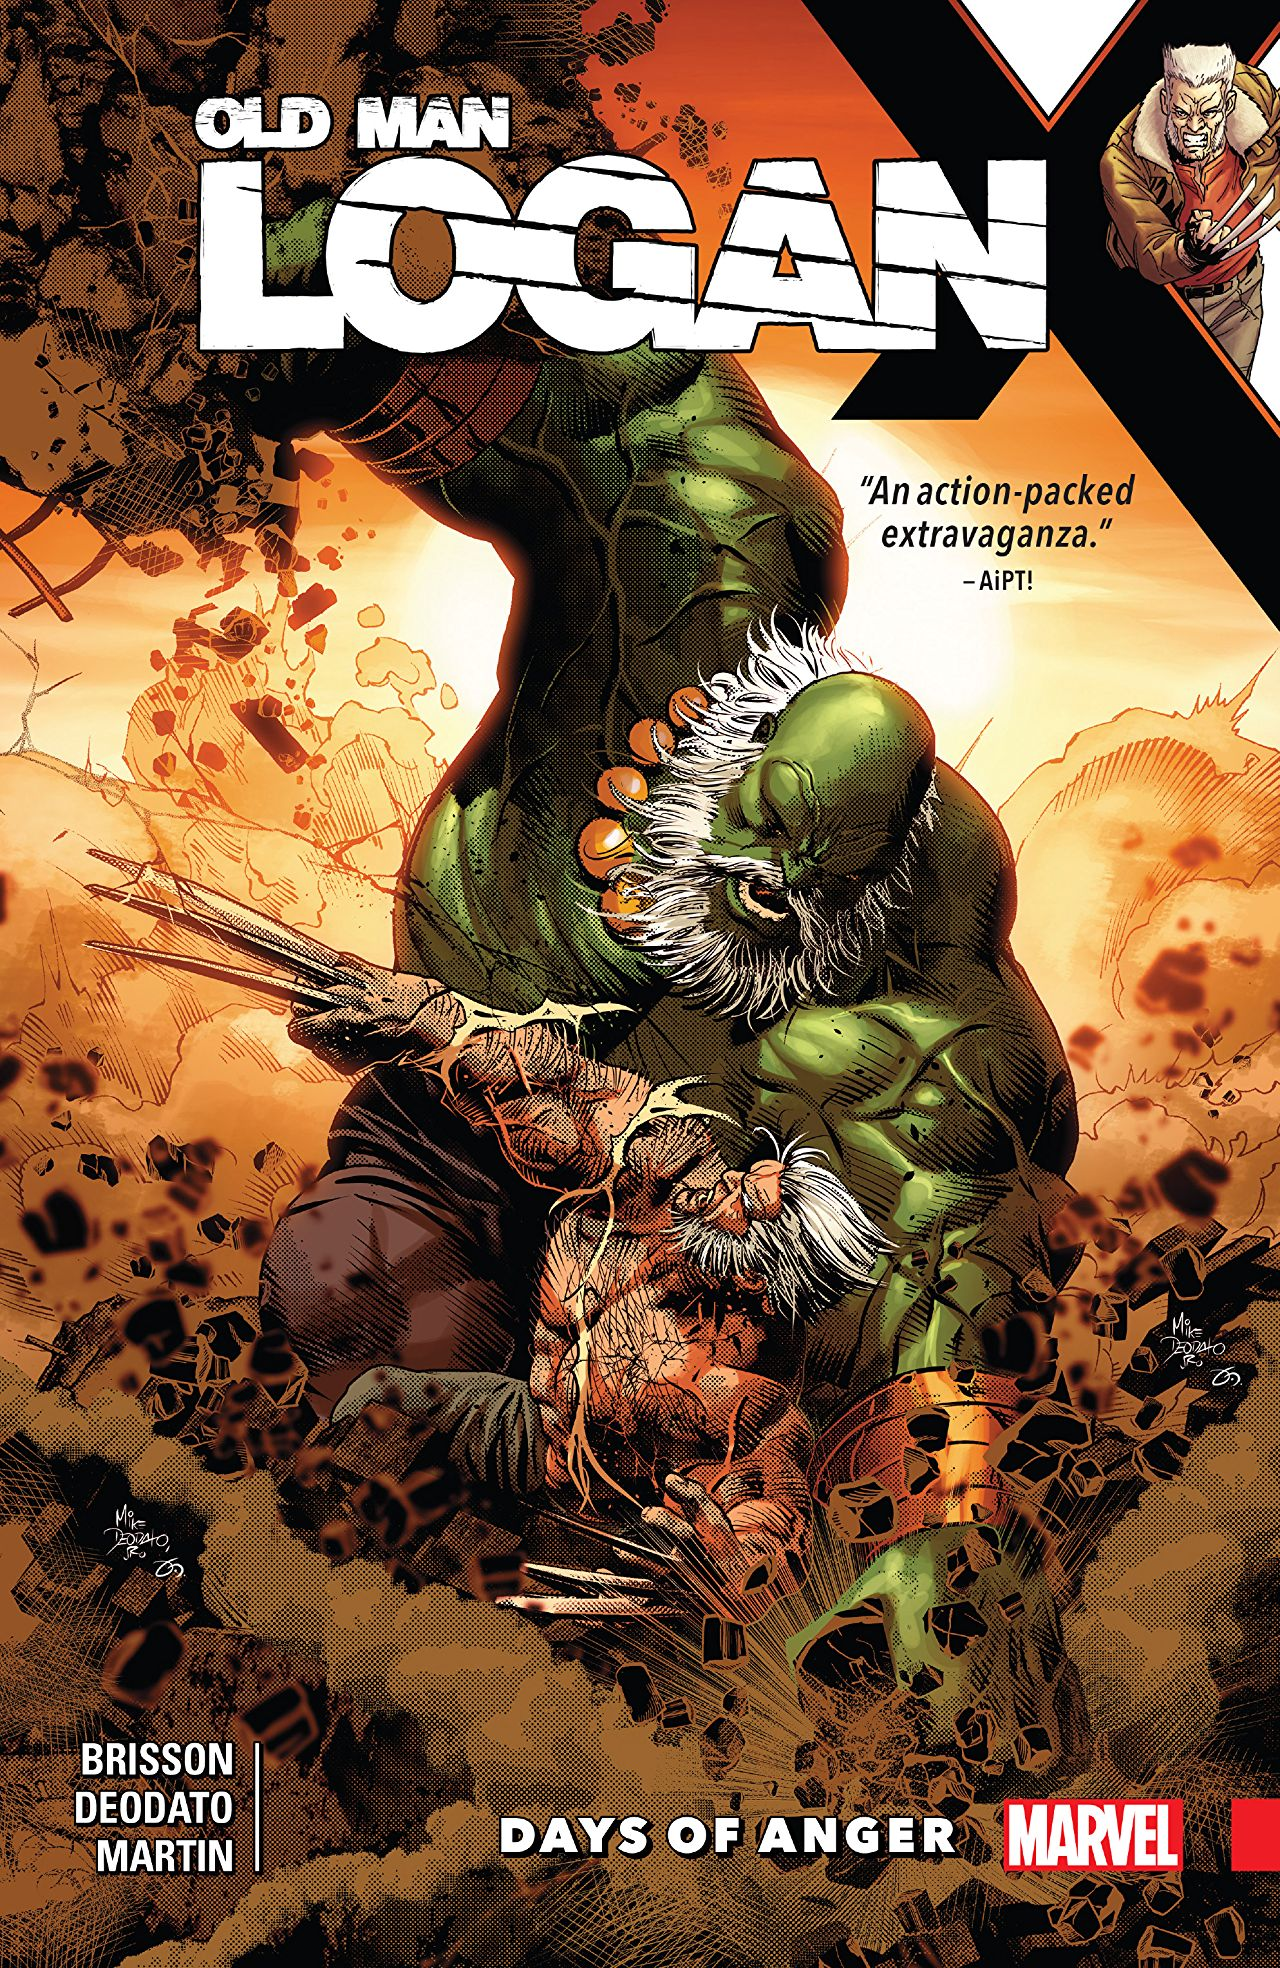 'Old Man Logan Vol. 6: Days of Anger' review: Solid and brutal storytelling from the new creative team